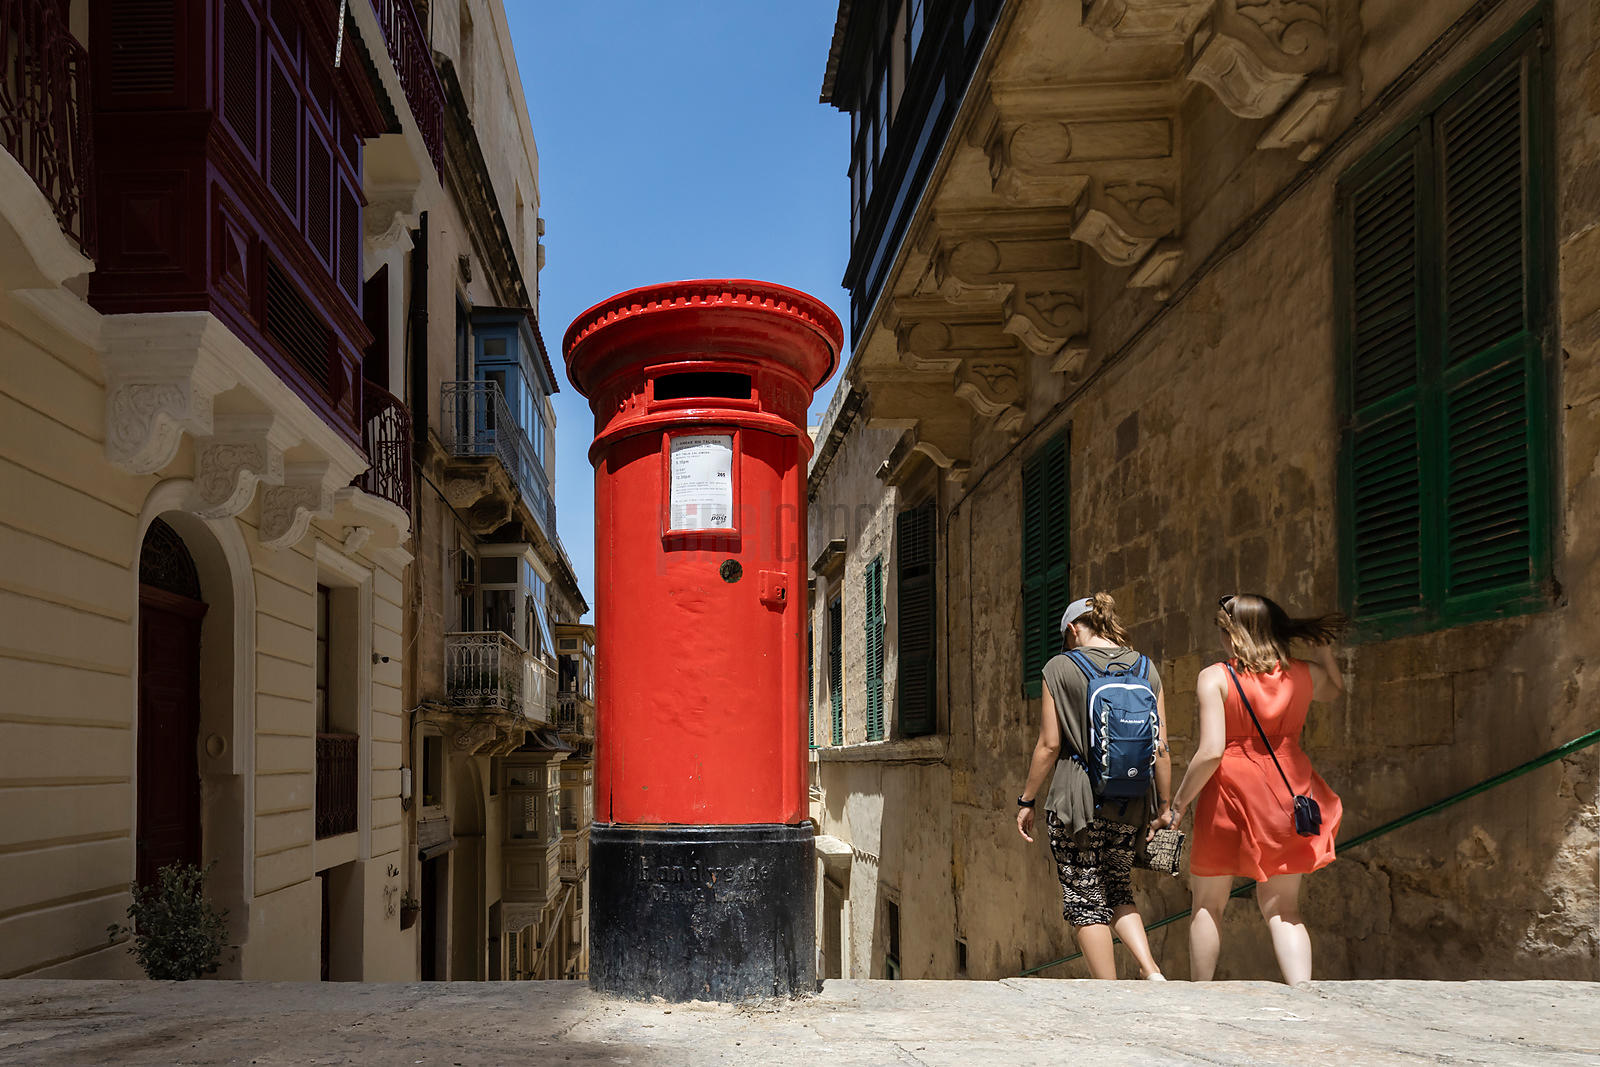 Tourists Walking down MA Vassallis St Past an Old English Postbox